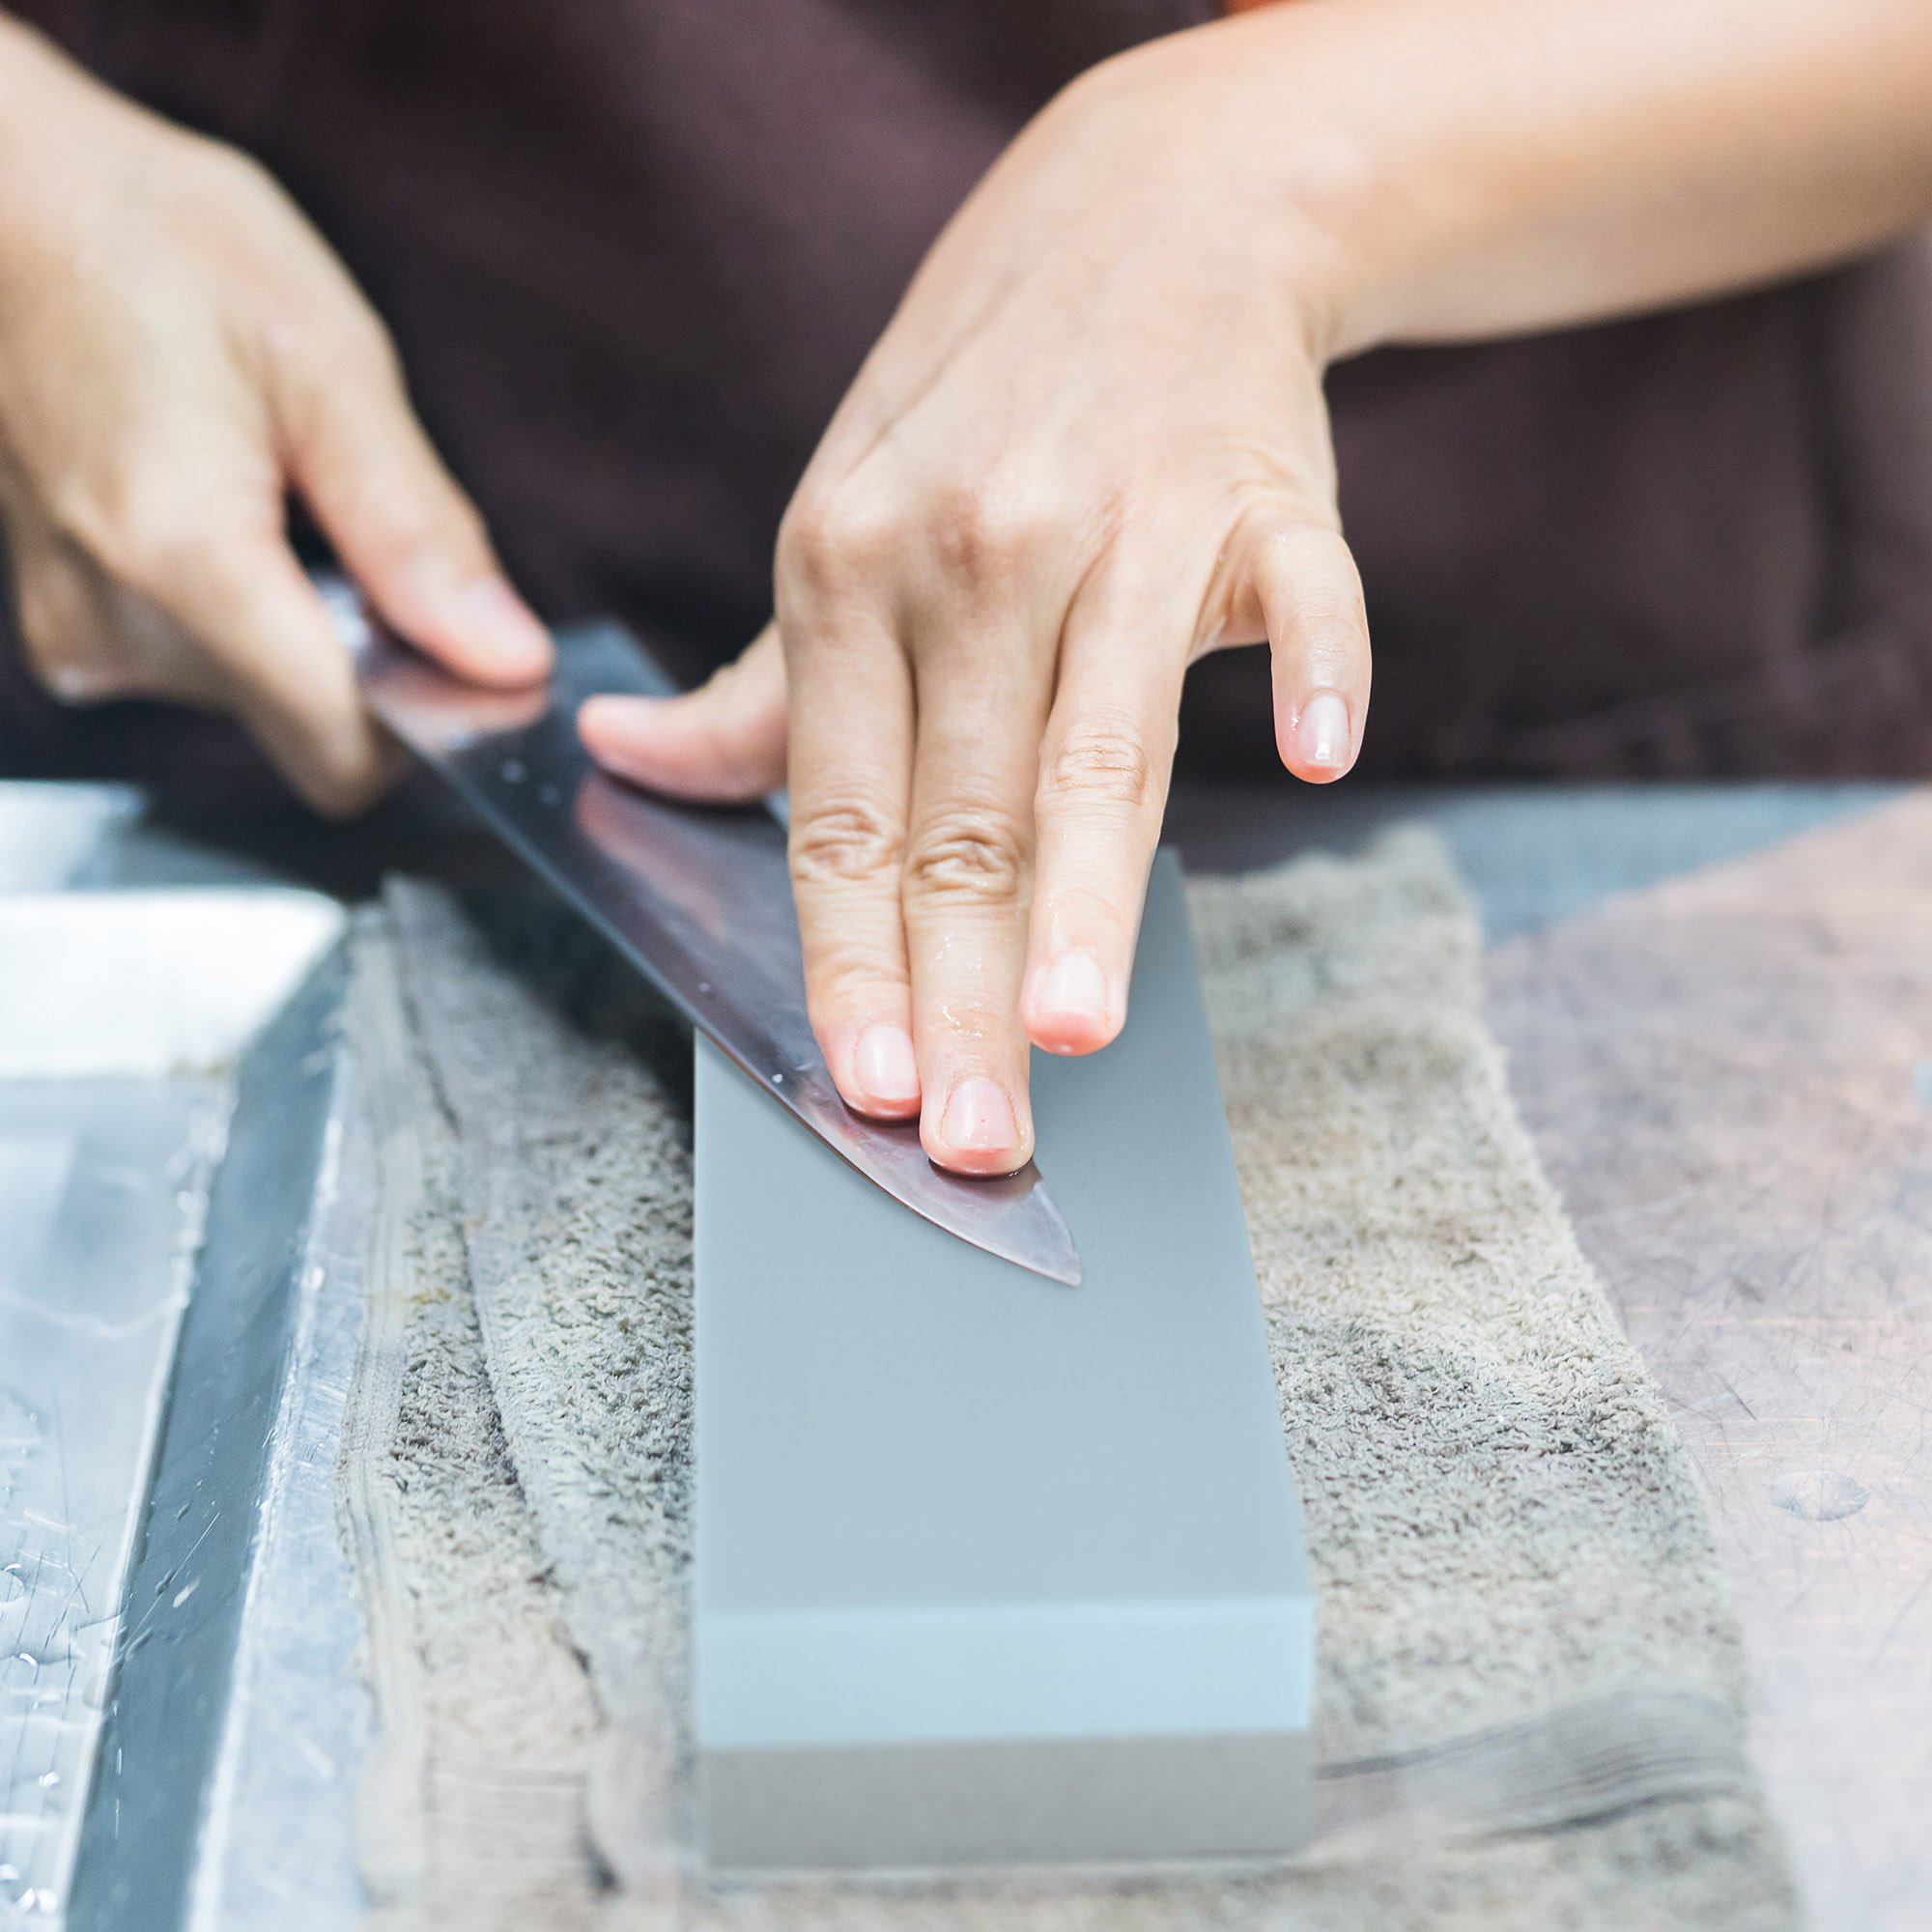 Whetstone Cutlery 20-10960 Knife Sharpening Stone-Dual Sided 400/1000 Grit Water Stone-Sharpener and Polishing Tool for Kitchen, Hunting and Pocket Knives or Blades by Whetstone by Whetstone Cutlery (Image #4)